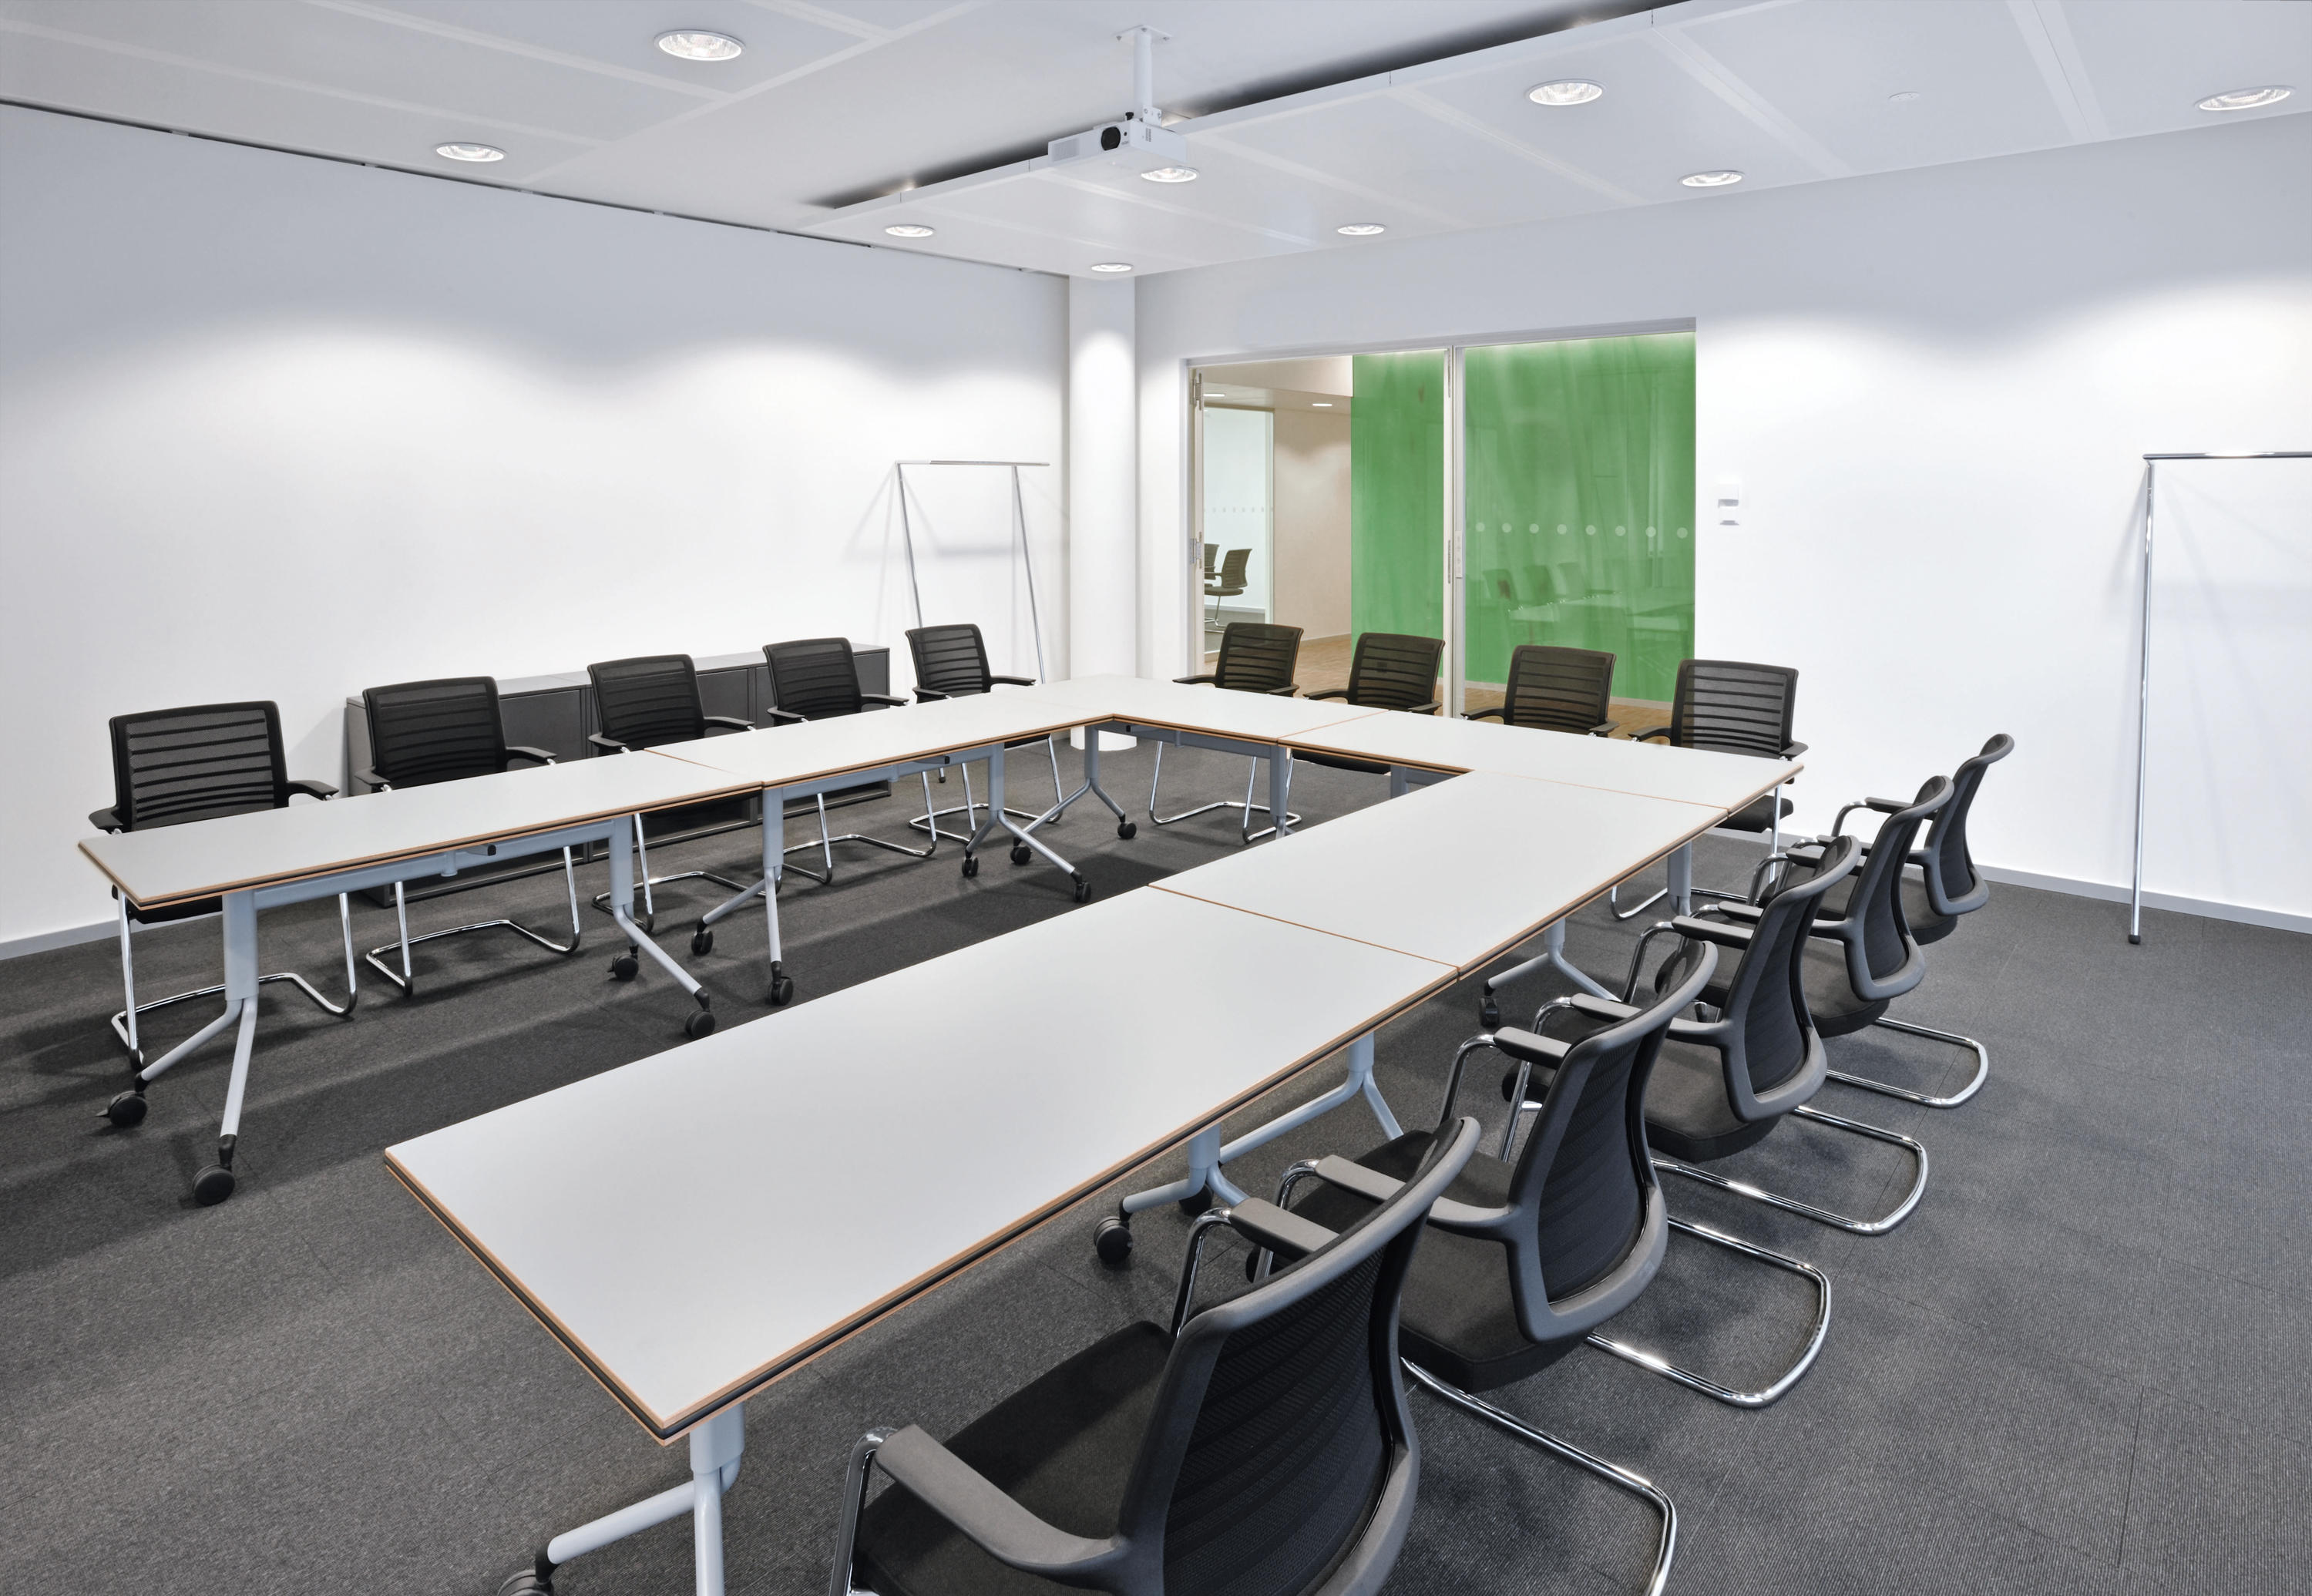 HERO 162H - Management chairs from Interstuhl Büromöbel GmbH & Co ...